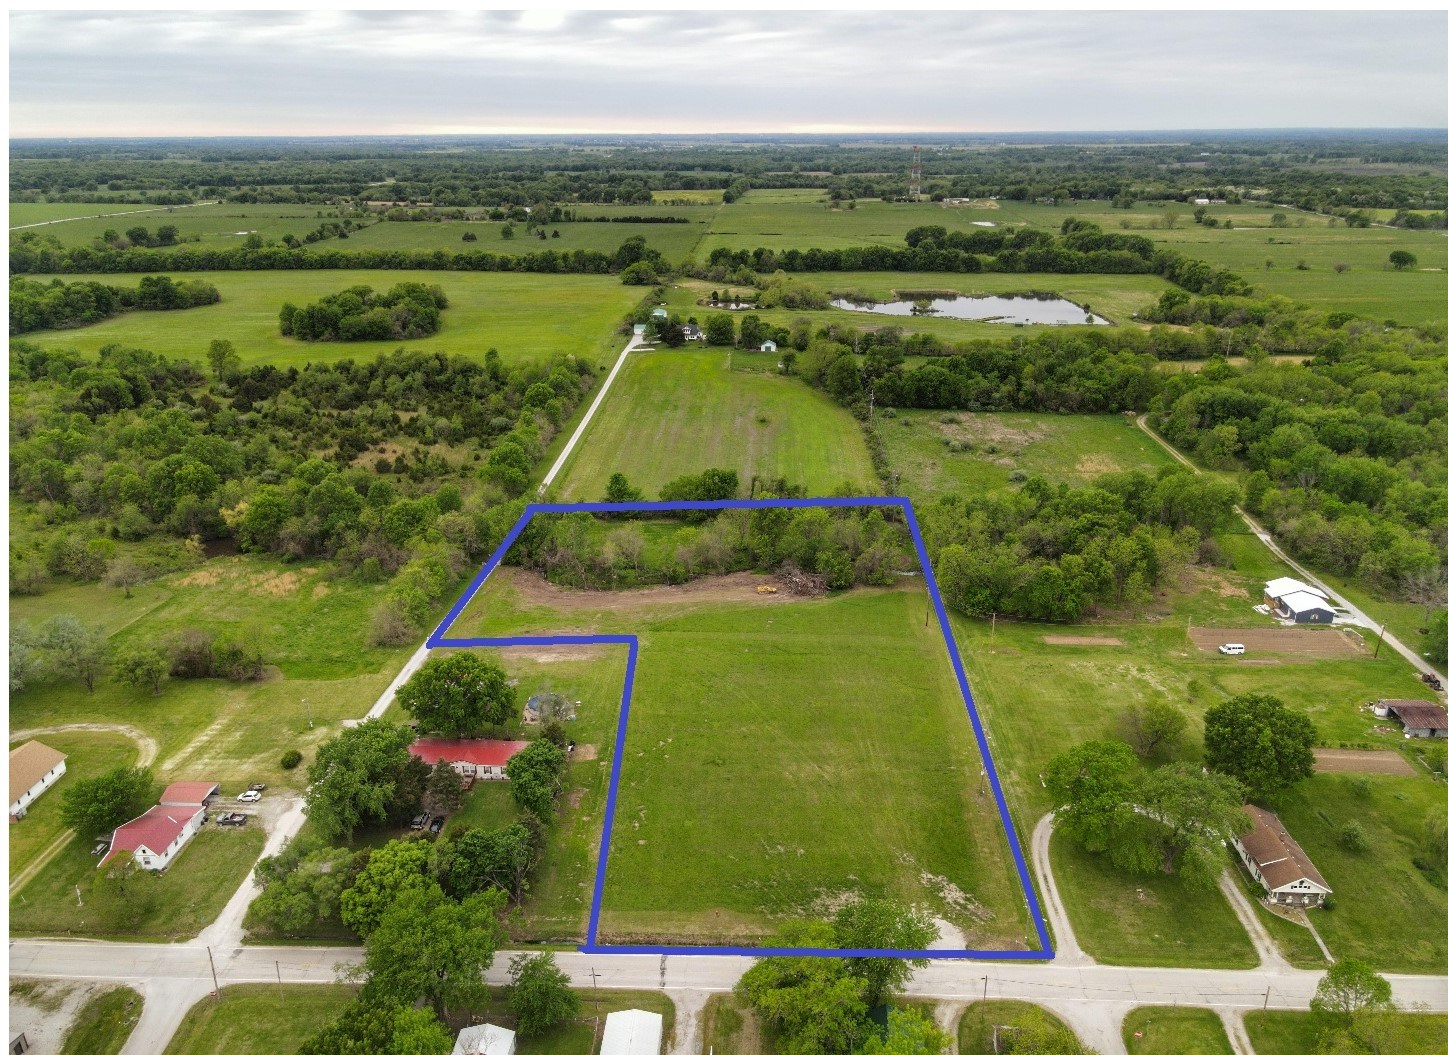 Land for sale in Deepwater MO